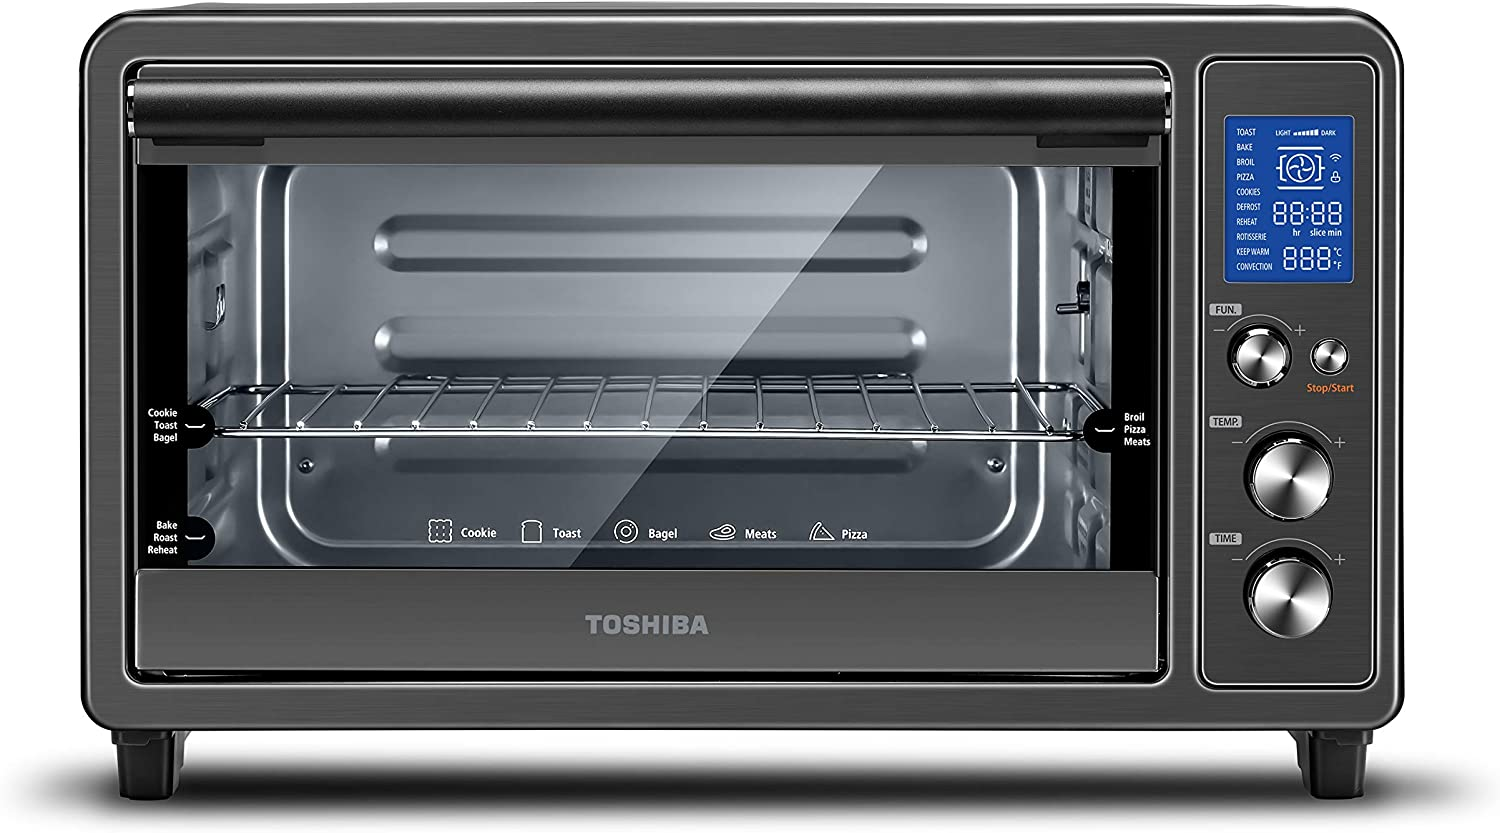 Toshiba Digital Toaster Oven with Double Infrared Heating and Speedy Convection, Larger 6-slice/12-inch Capacity, 1700W, 10 Functions and 6 Accessories Fit All Your Needs